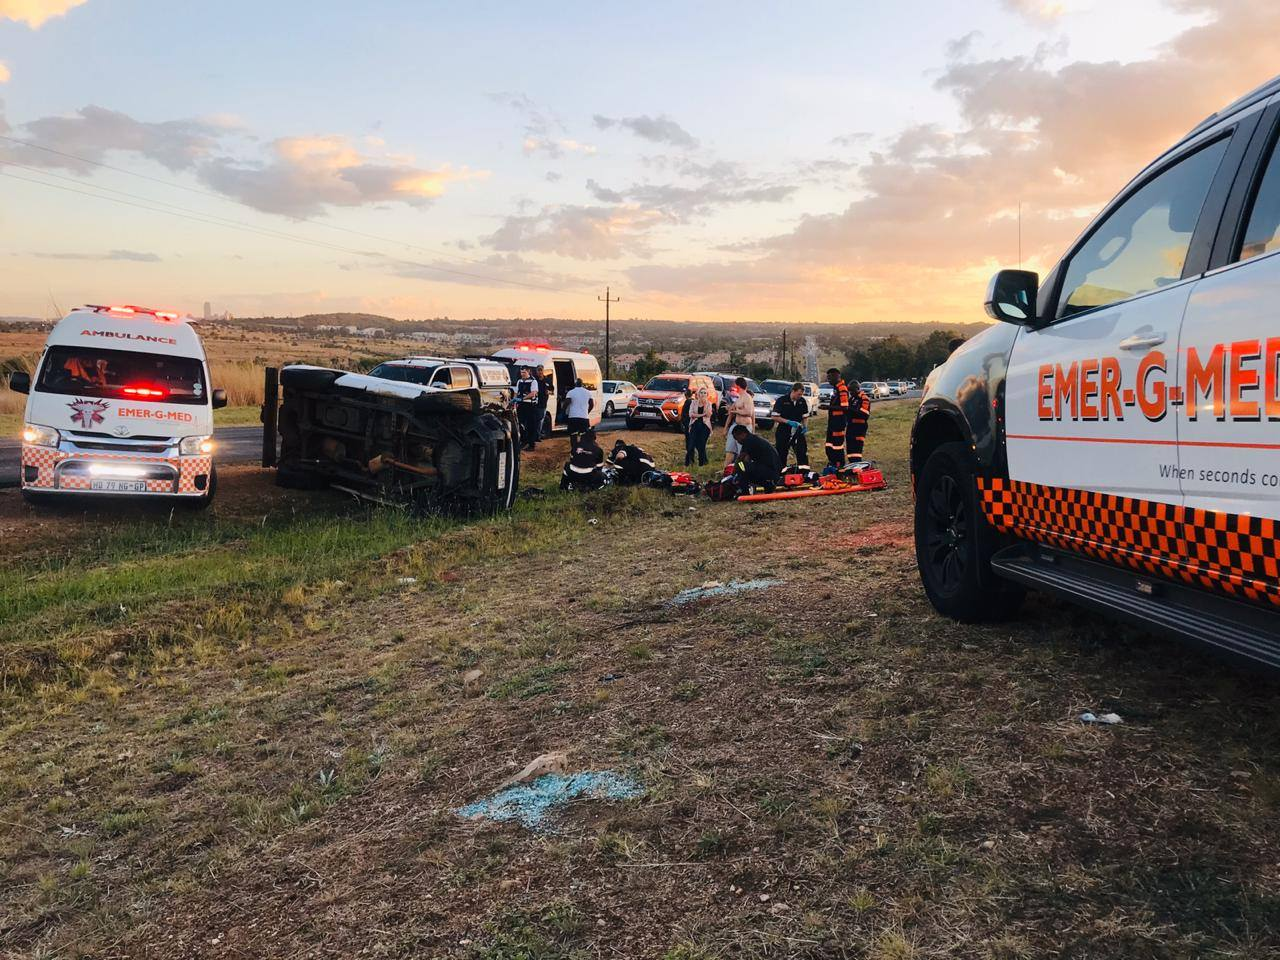 Four injured in collision in Kyalami